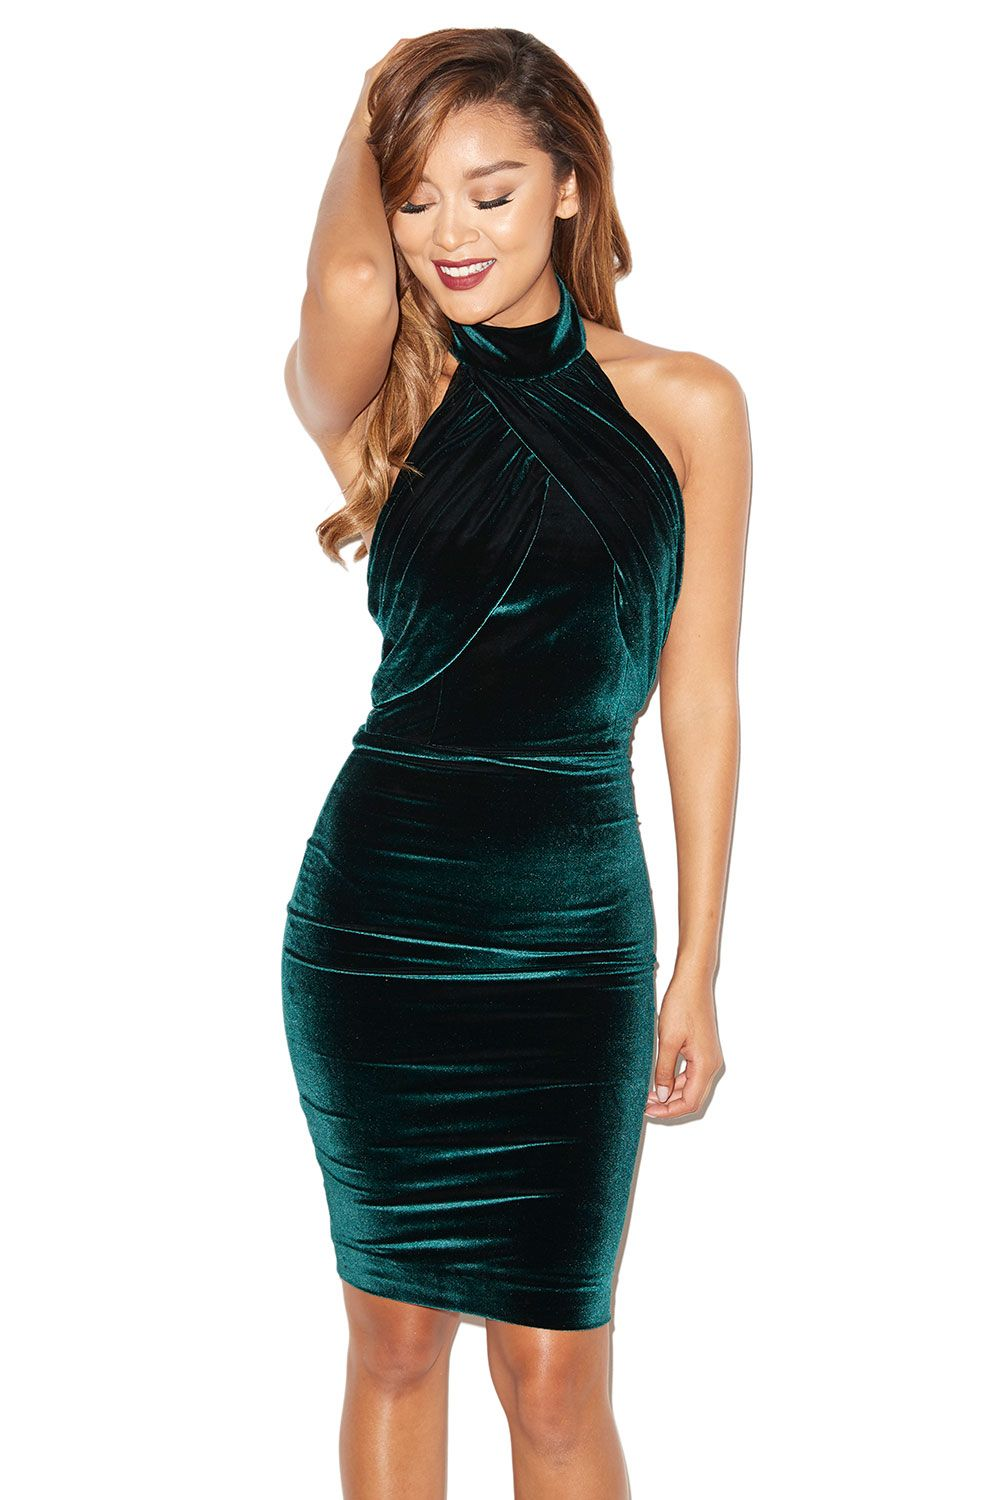 Bellina  Dark Green Velvet Backless Dress - SALE.   f71b6e620d84